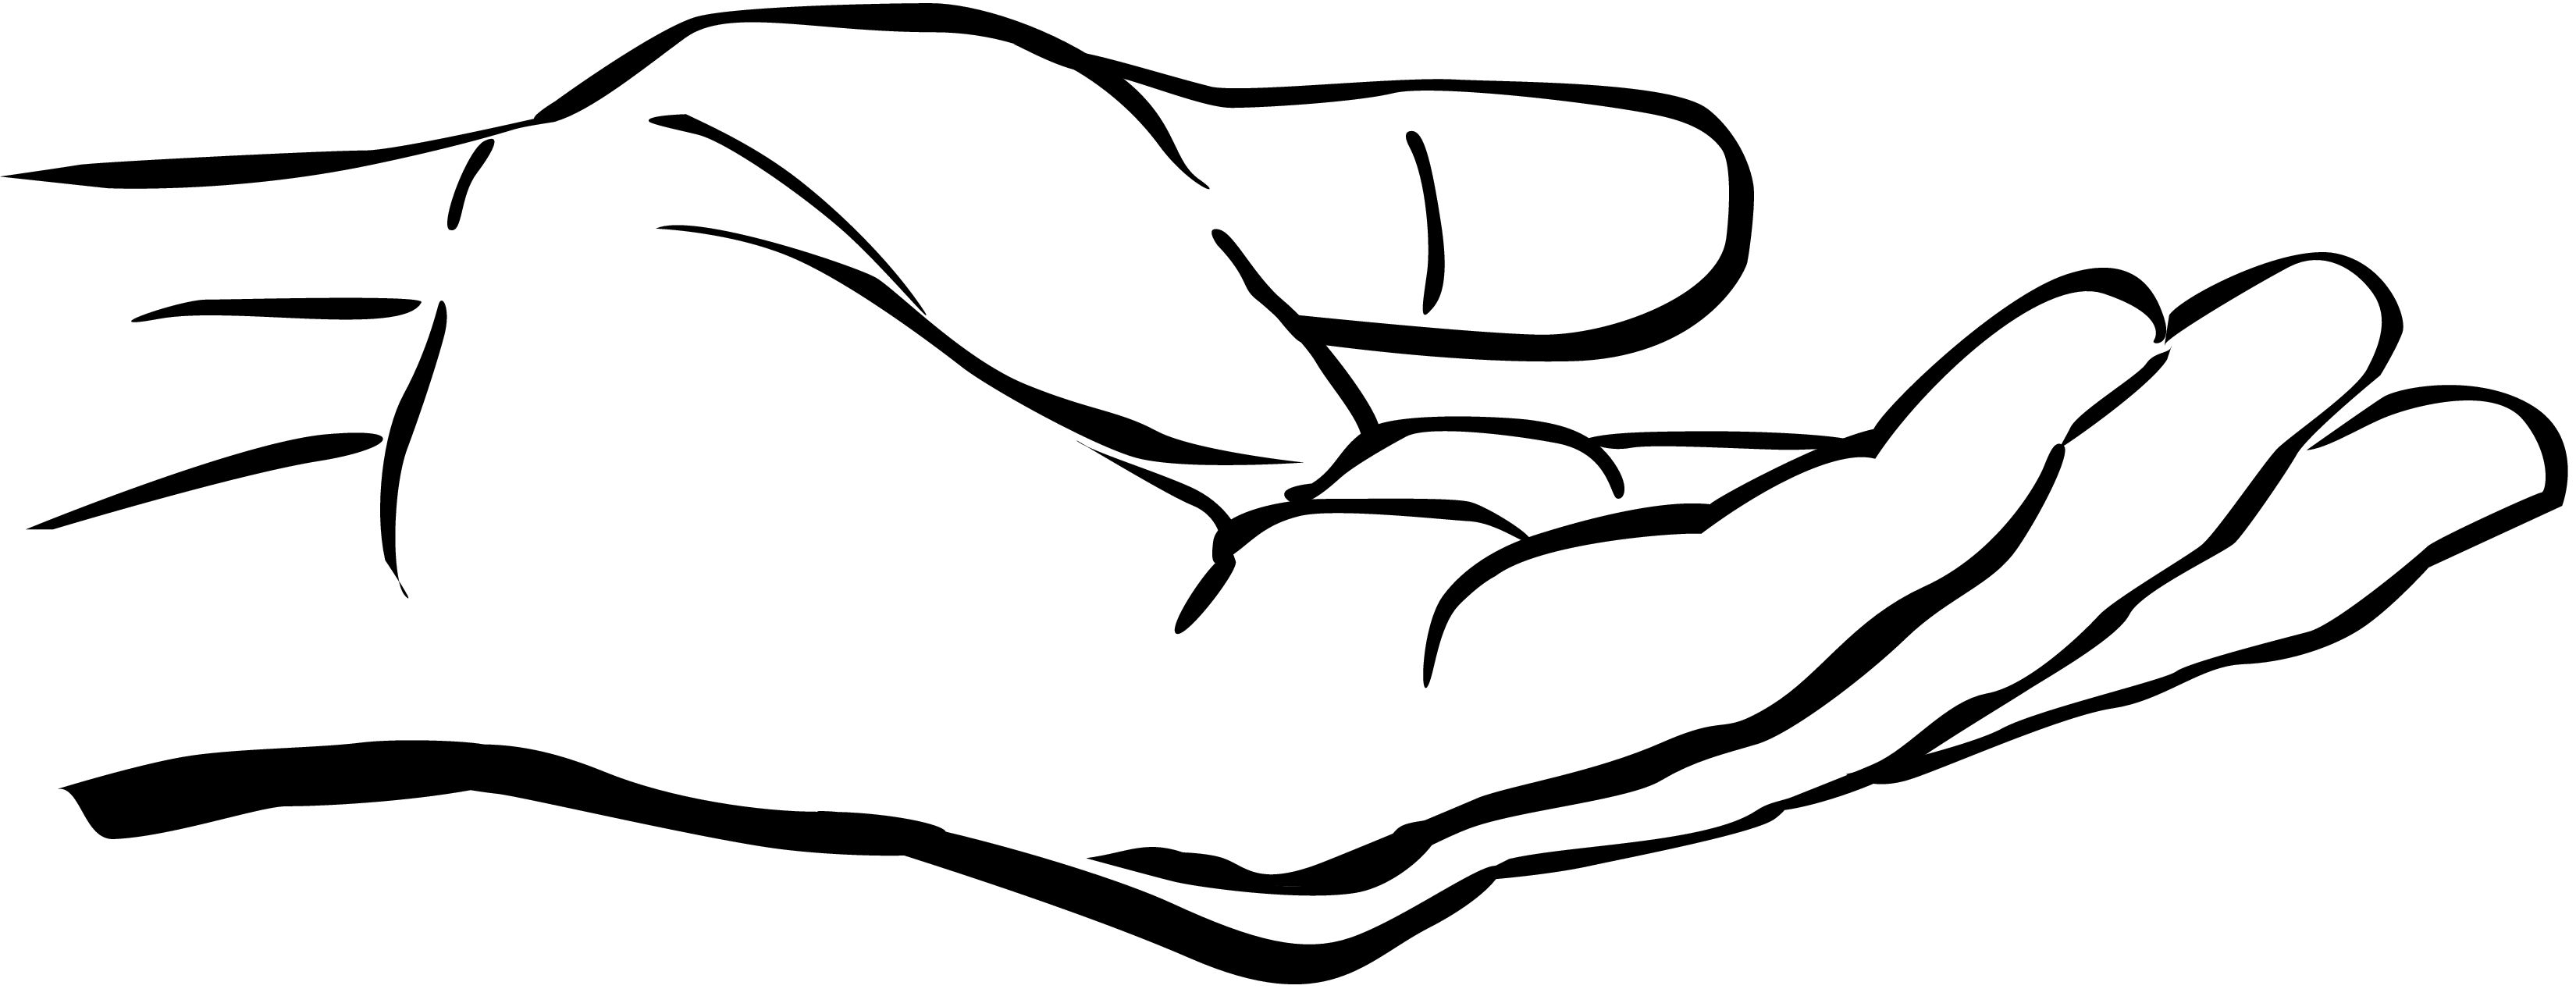 Hands clipart. God s hand of